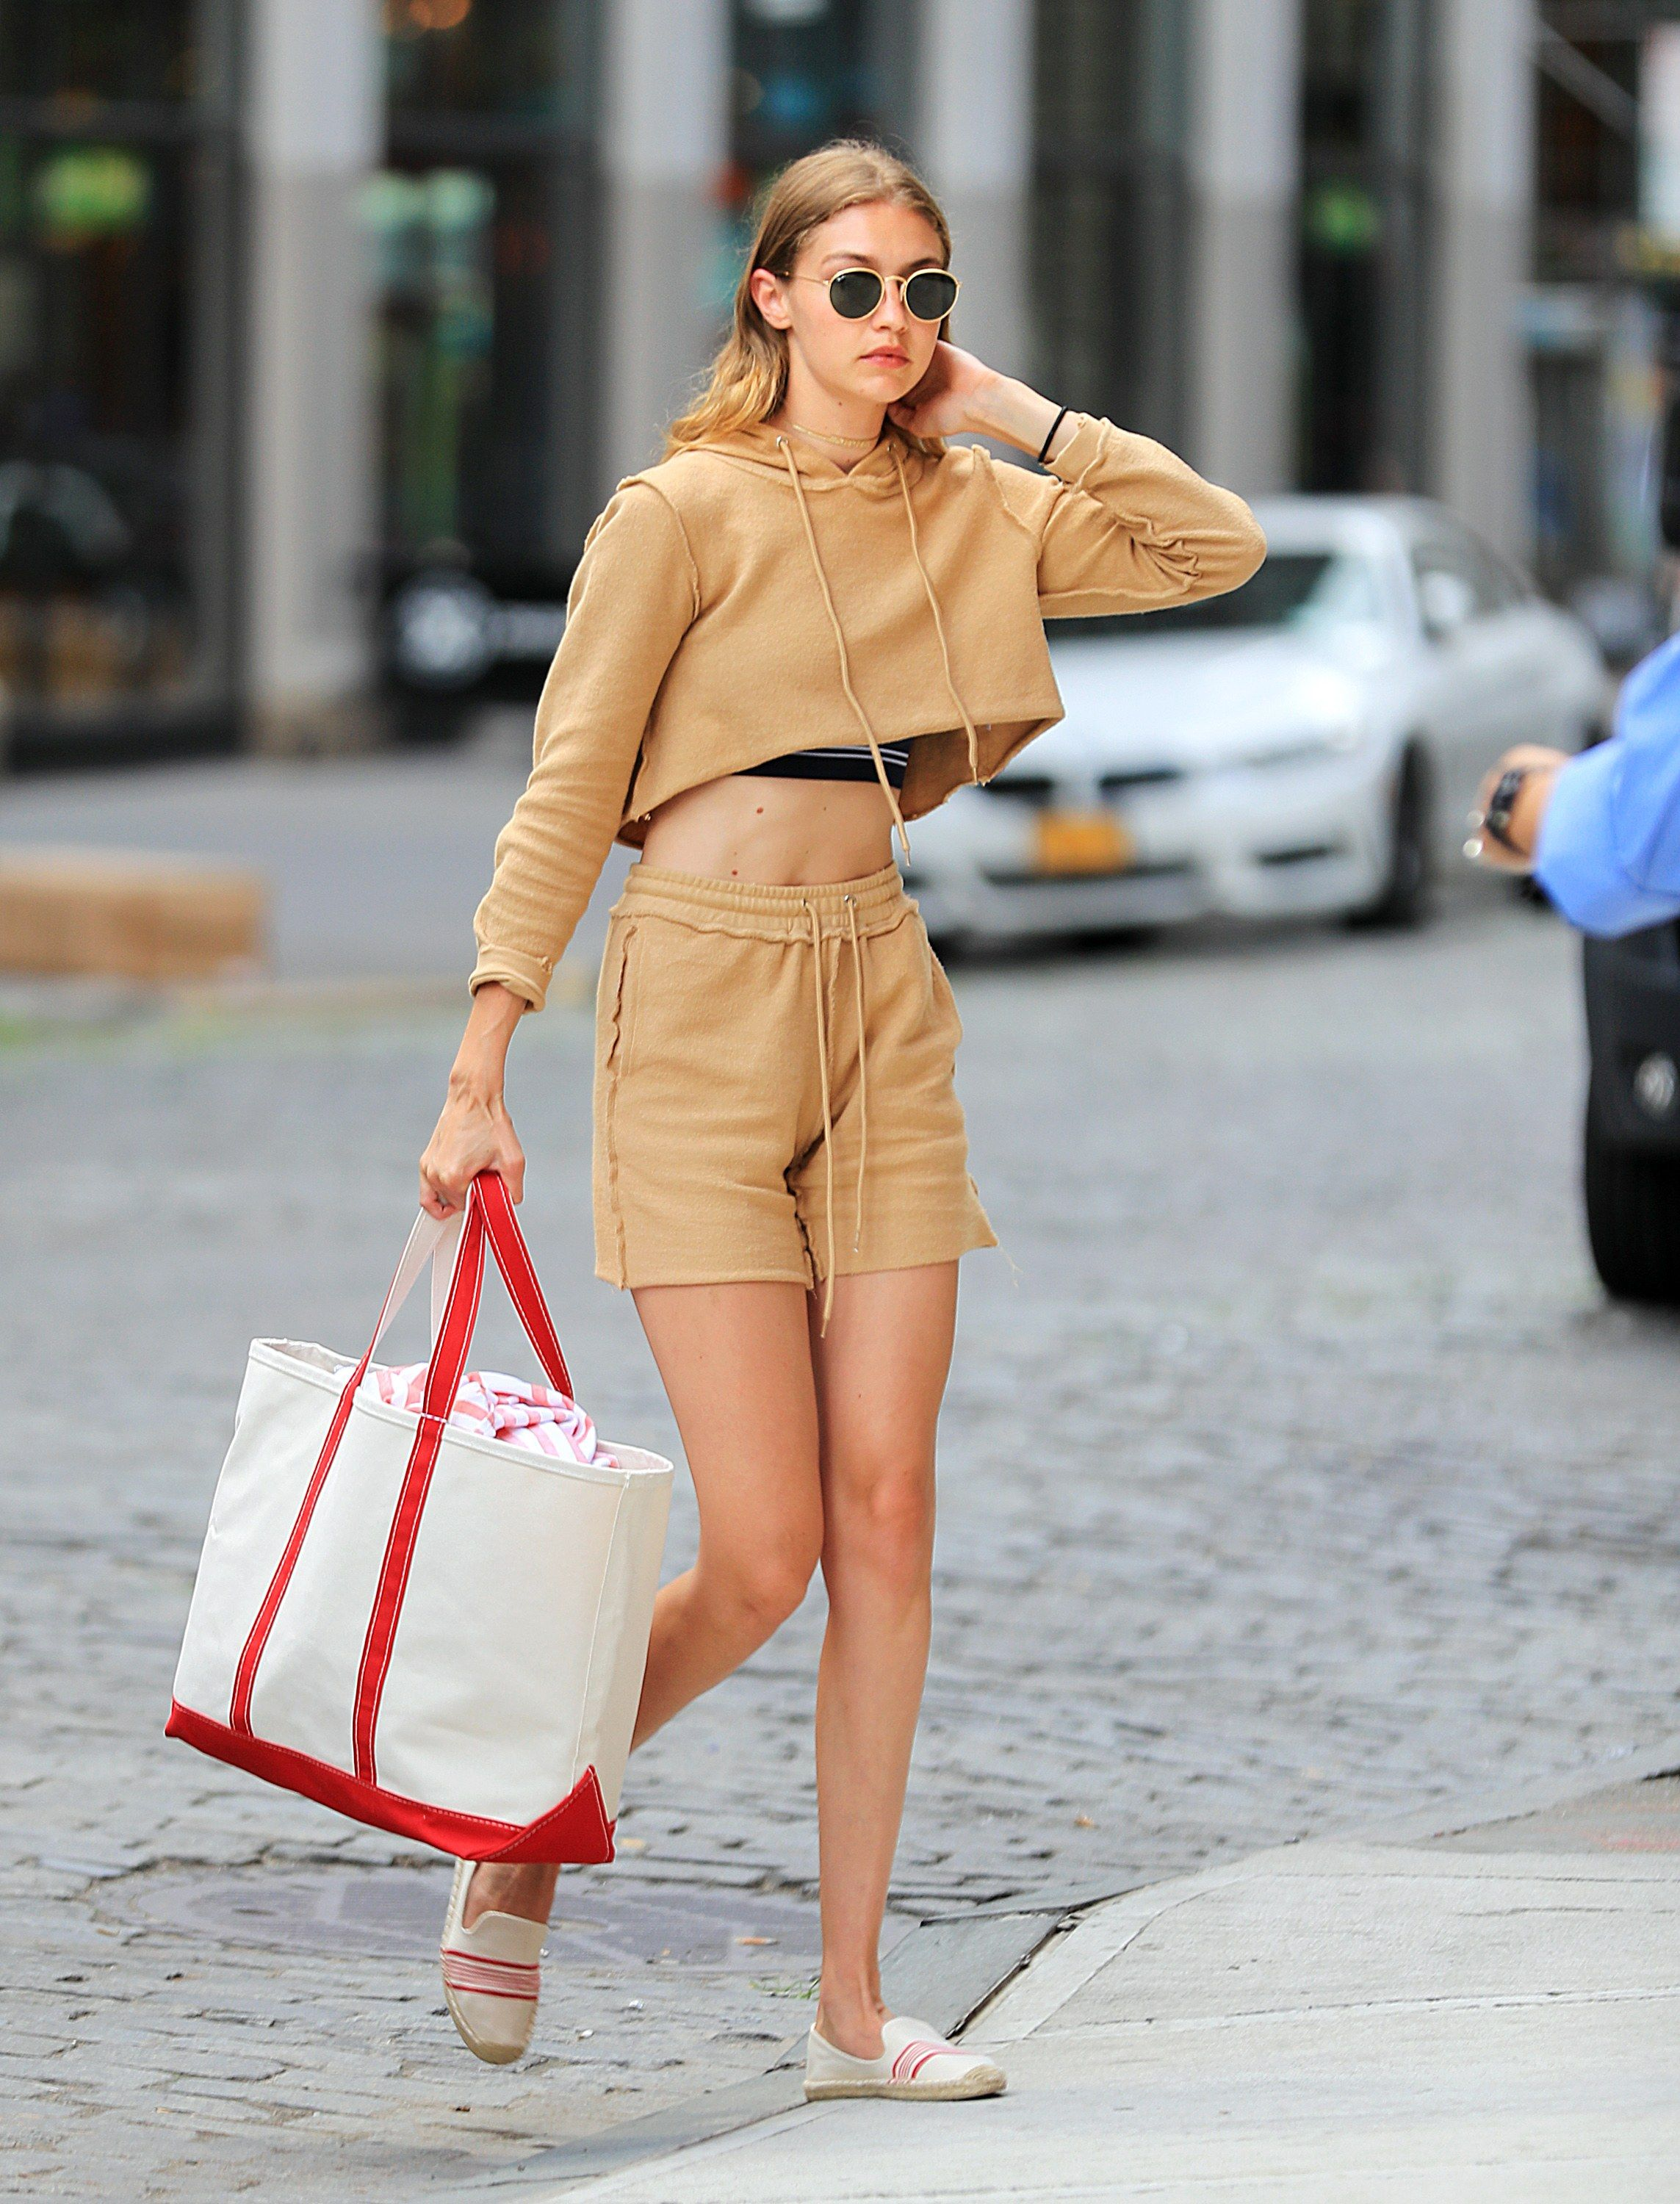 a75e153d6a25 Gigi Hadid Wears a Sweatsuit Crop Top and Shorts in New York City